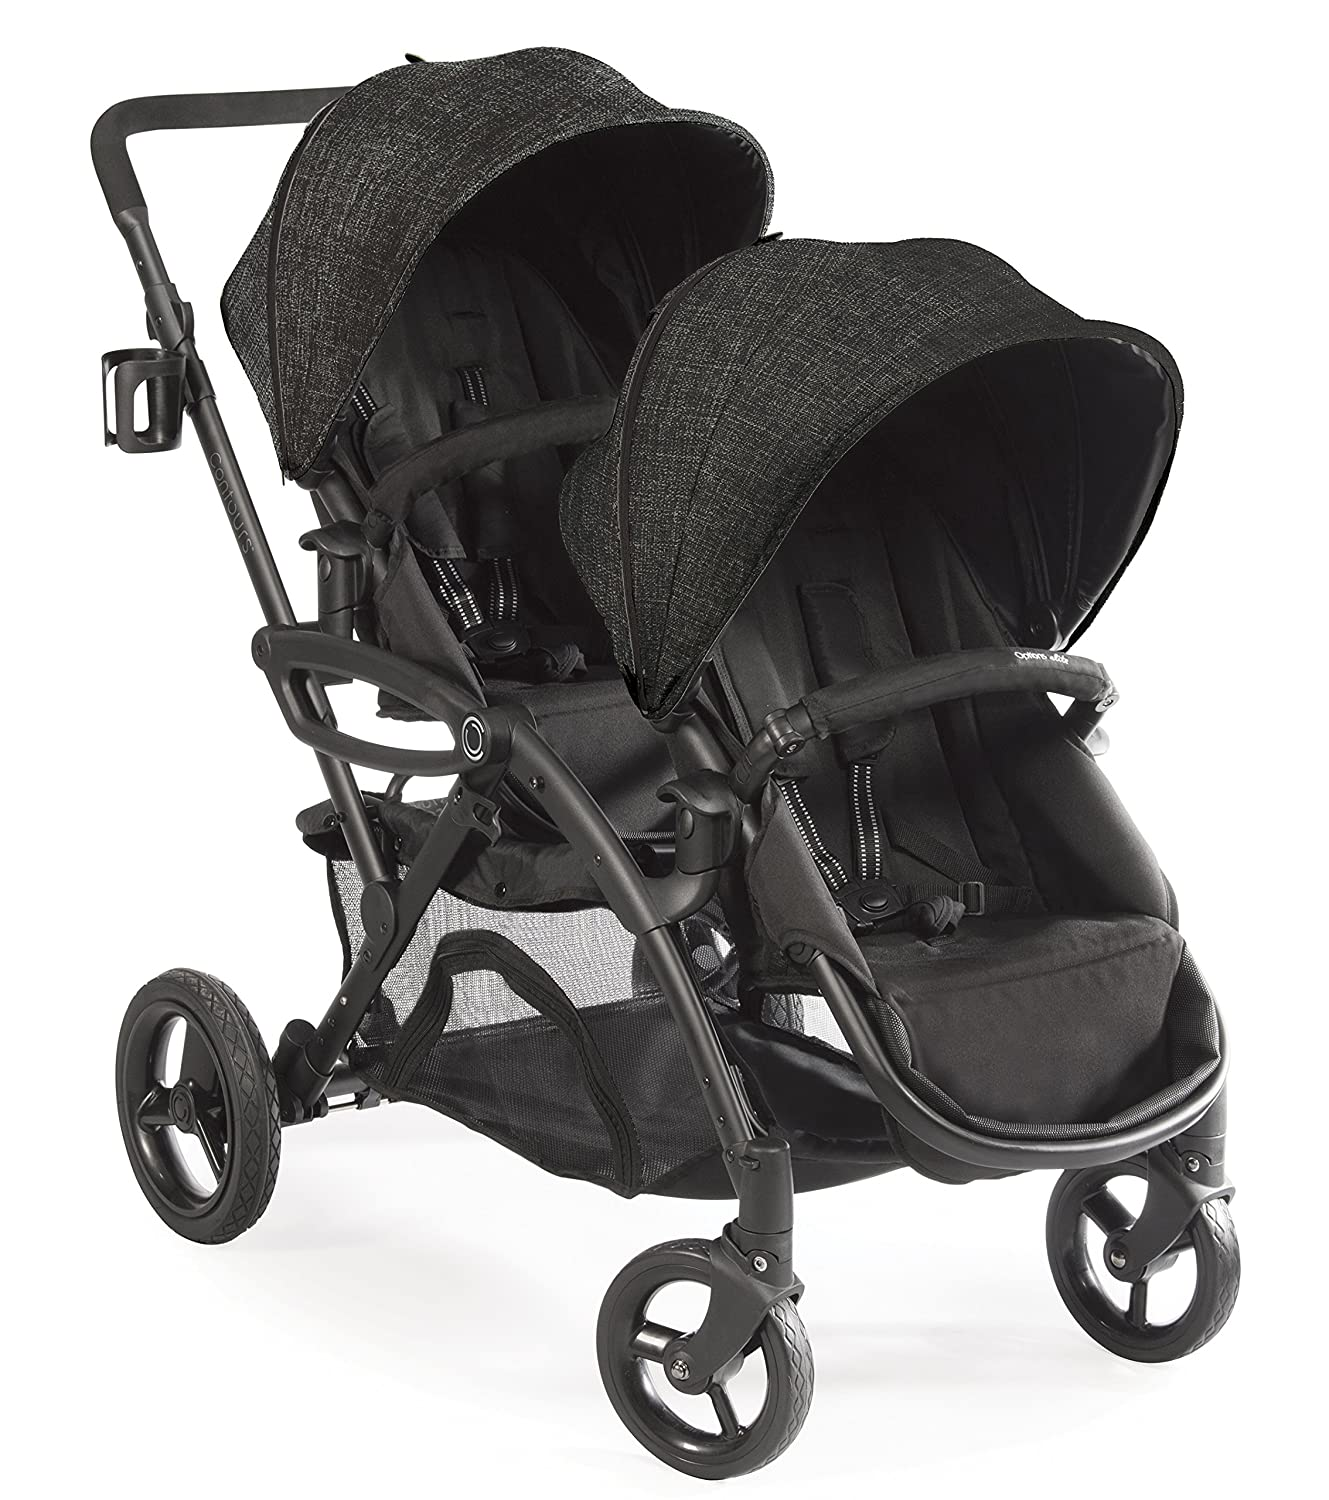 Top 7 Best Tandem Strollers Reviews in 2020 5